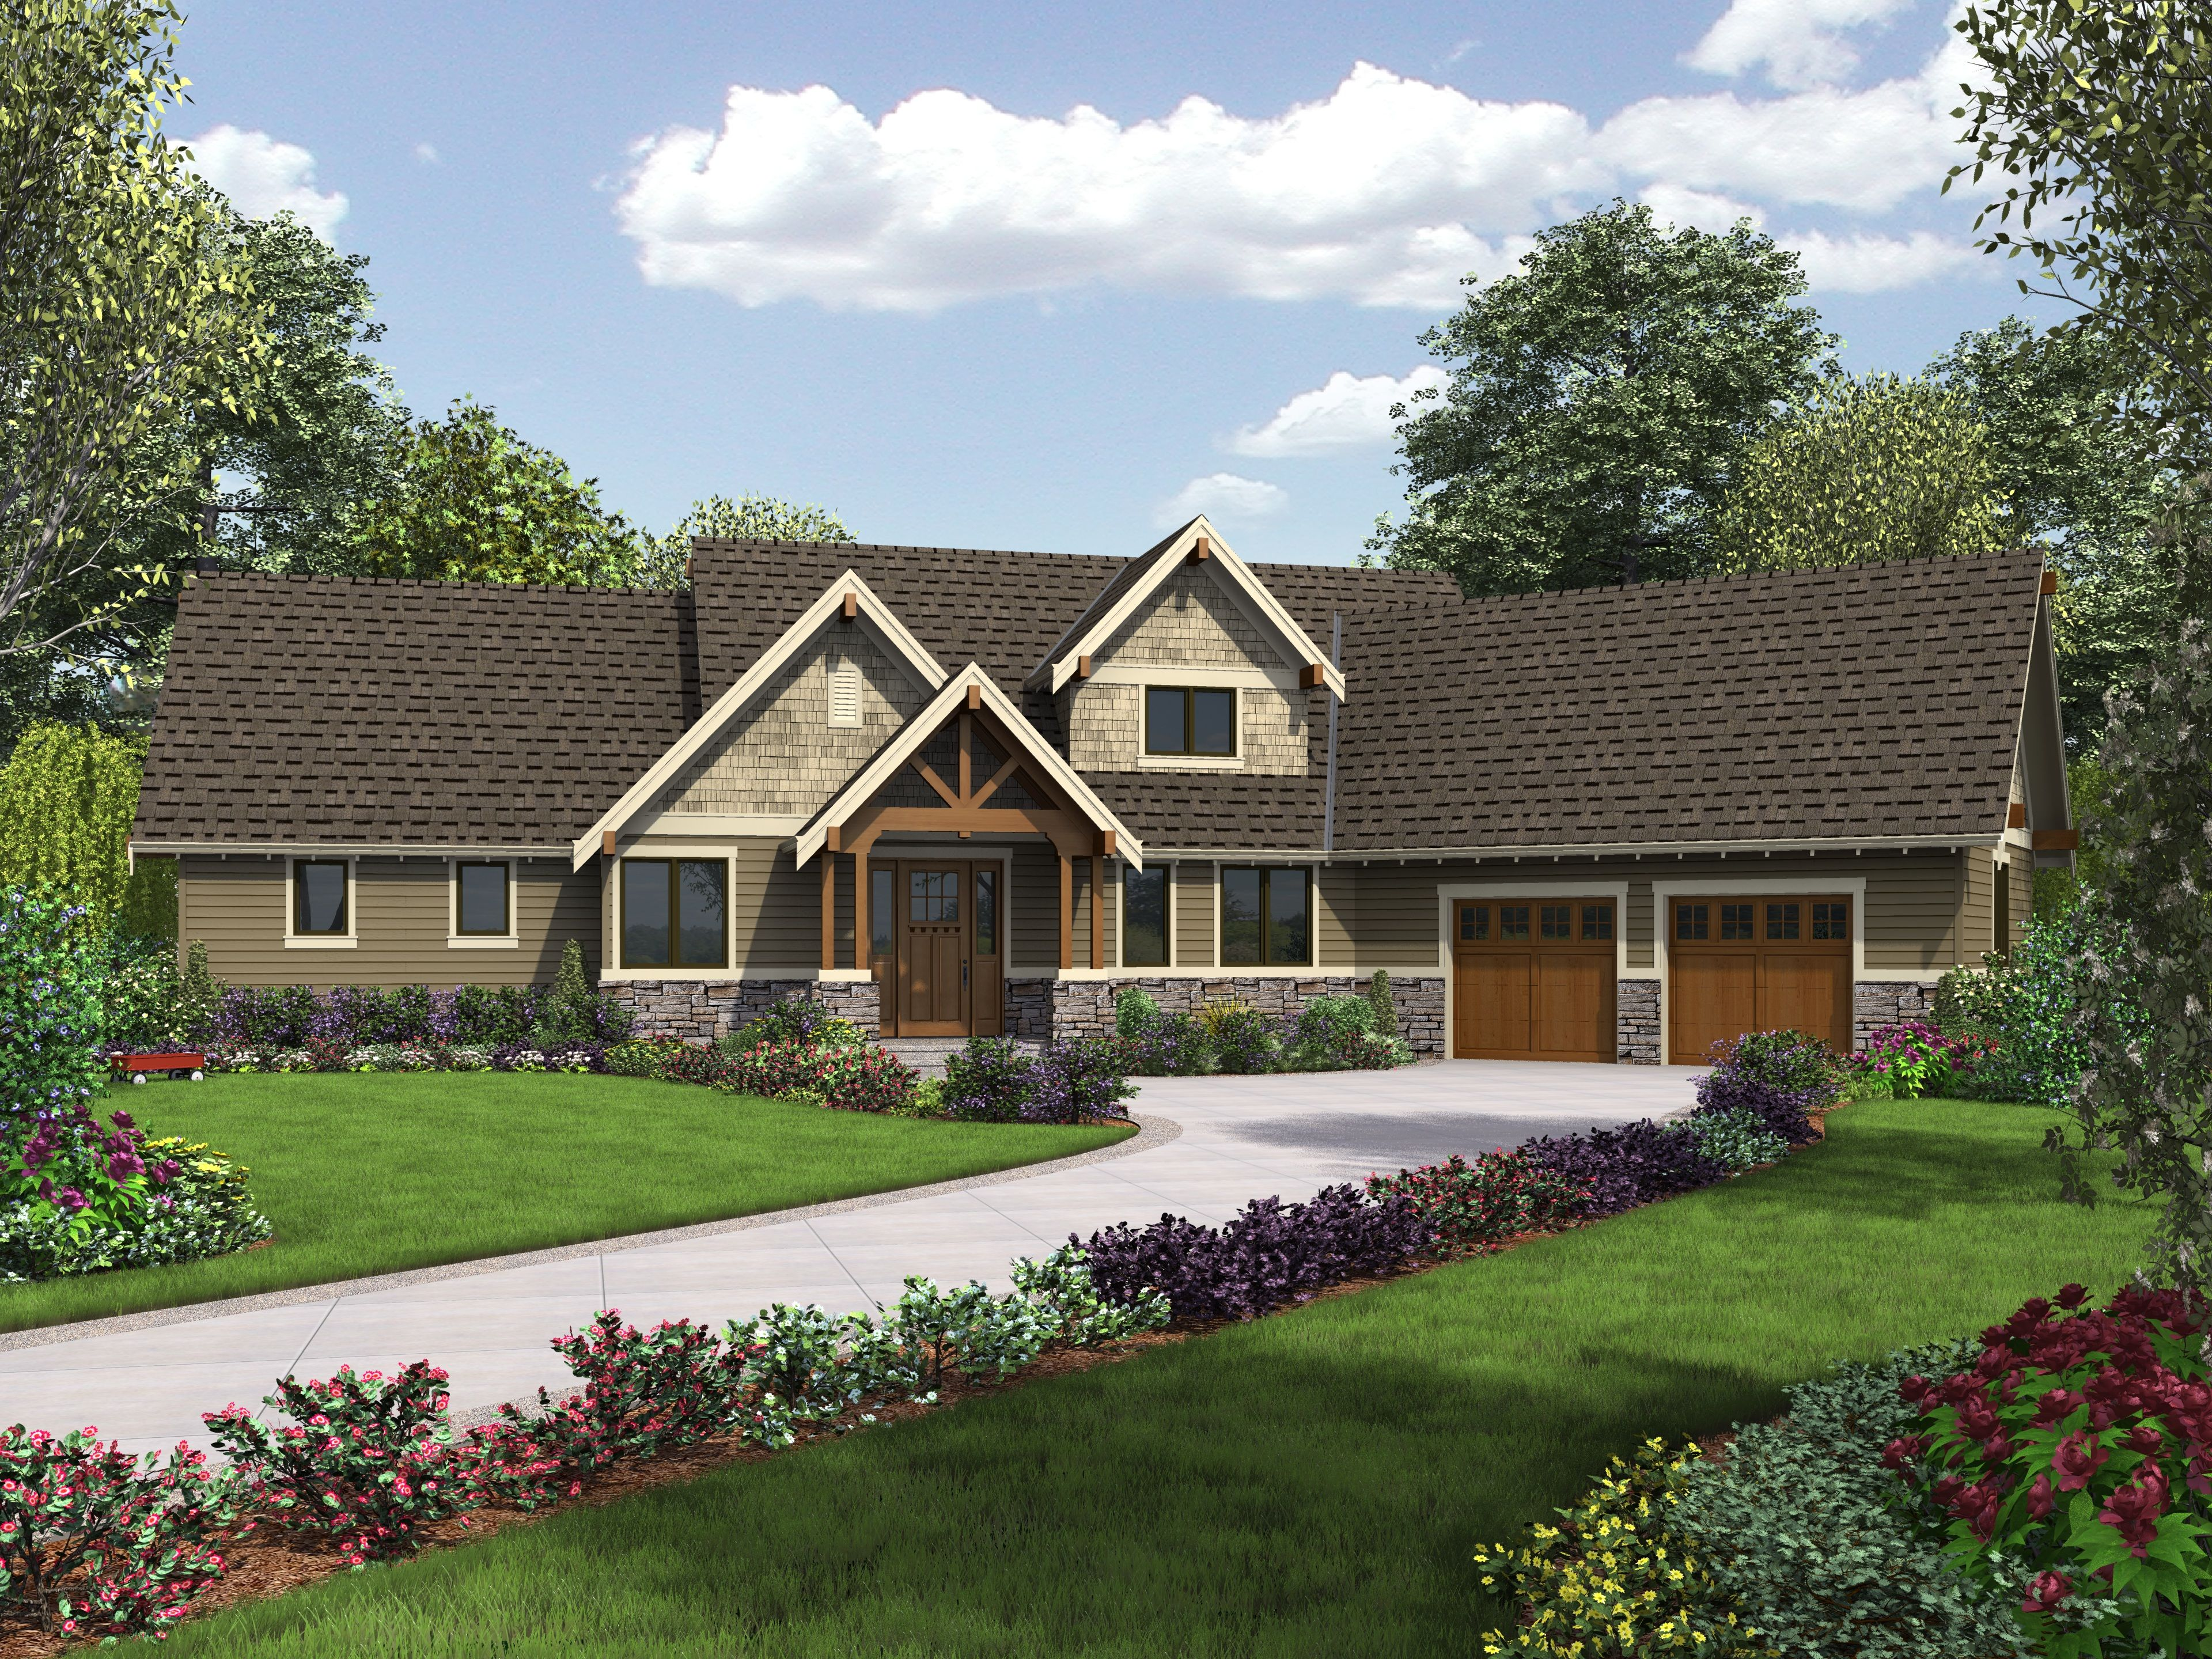 Plan 69594am Rugged Craftsman With Angled Garage Craftsman Style House Plans Craftsman House Plans Craftsman House